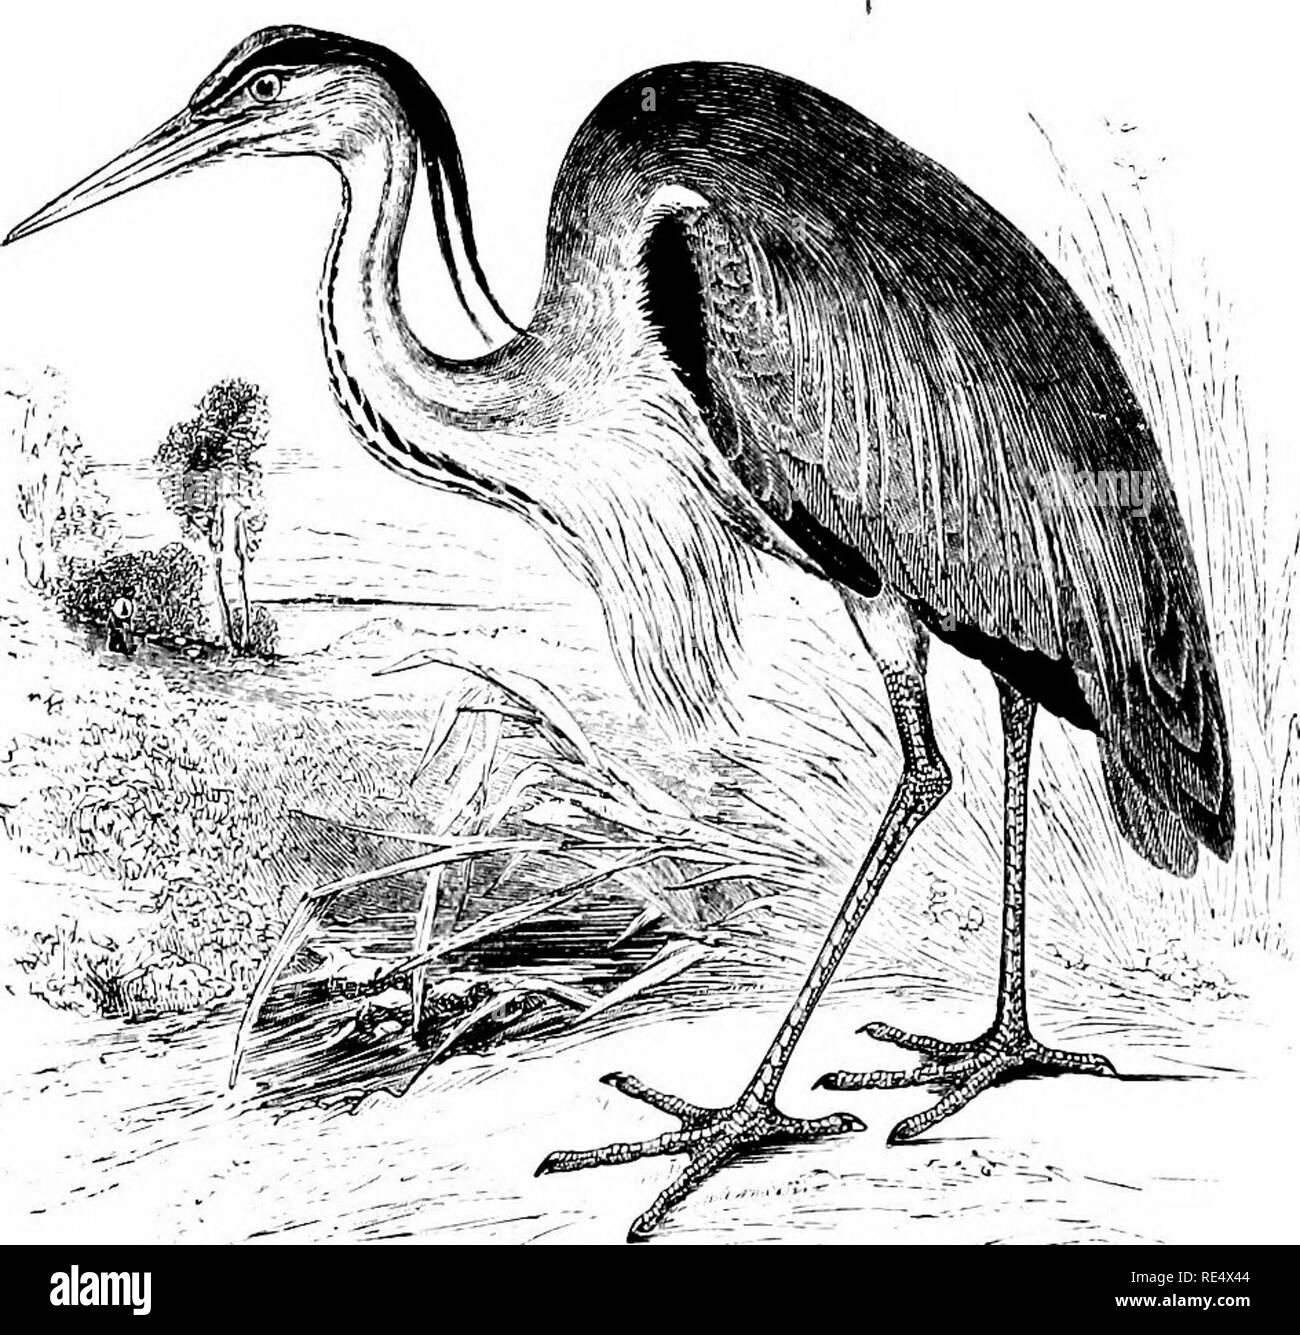 . An illustrated manual of British birds. Birds. ARDEID^. 367. THE COMMON HERON. Ardea cin:^rea, Linnaeus. This bird is no longer protected as in the days of Falconry, but it is still generally distributed throughout the British Islands; and in England the number of its colonies has suffered no diminution, though many of them are seriously reduced in size as compared with former times. In Scotland there never were many large heronries, but small ones are scattered over the greater part of the mainland as well as some of the outlying islands. The latter remark applies to Ireland, where, however - Stock Image